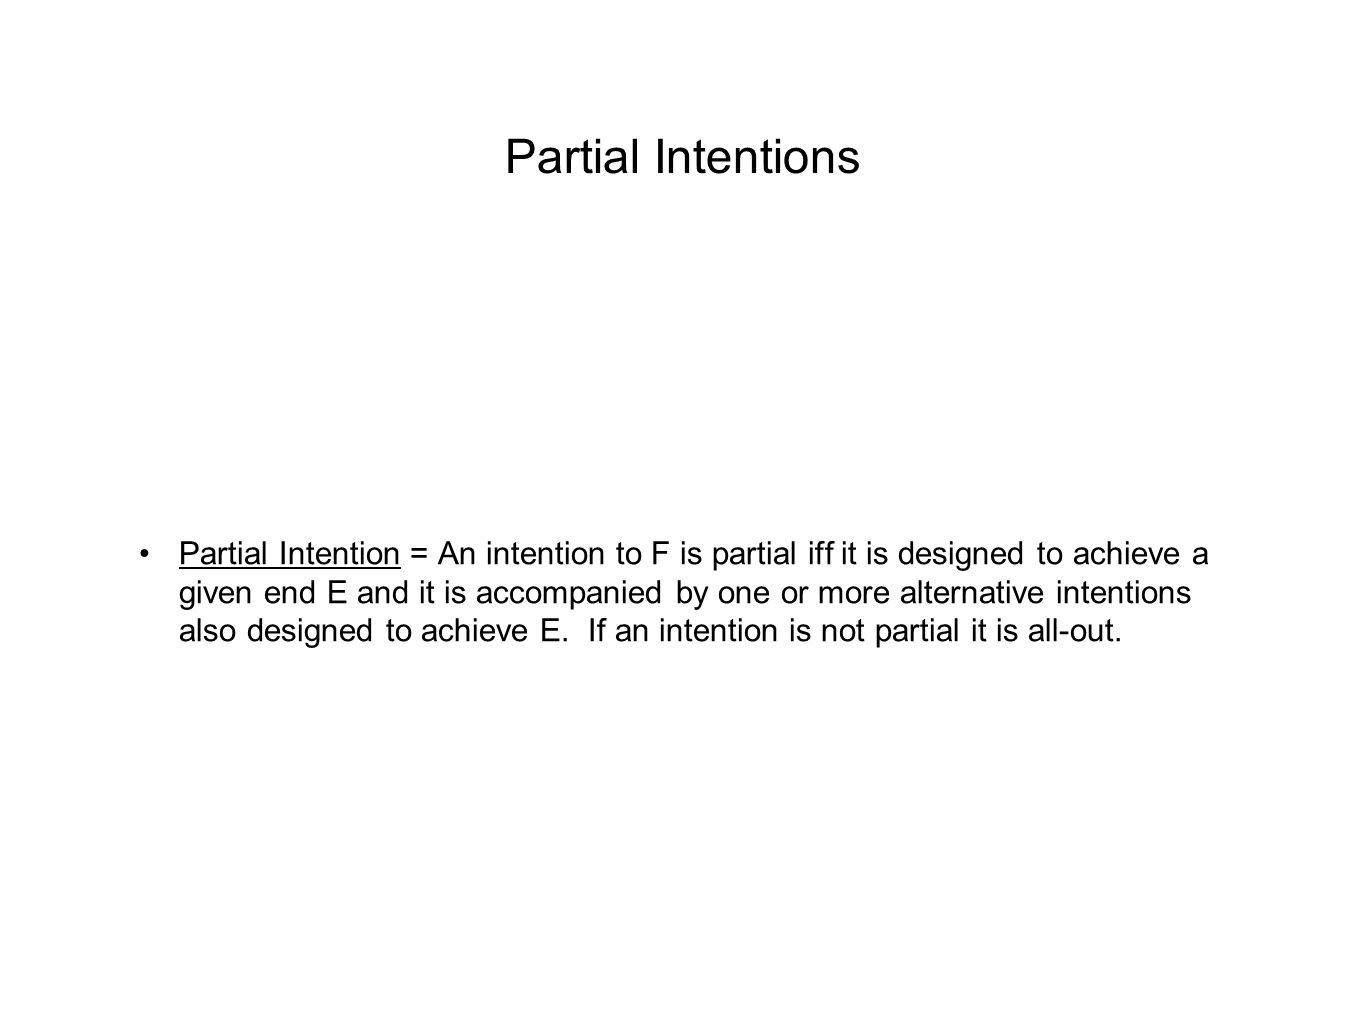 Partial Intentions